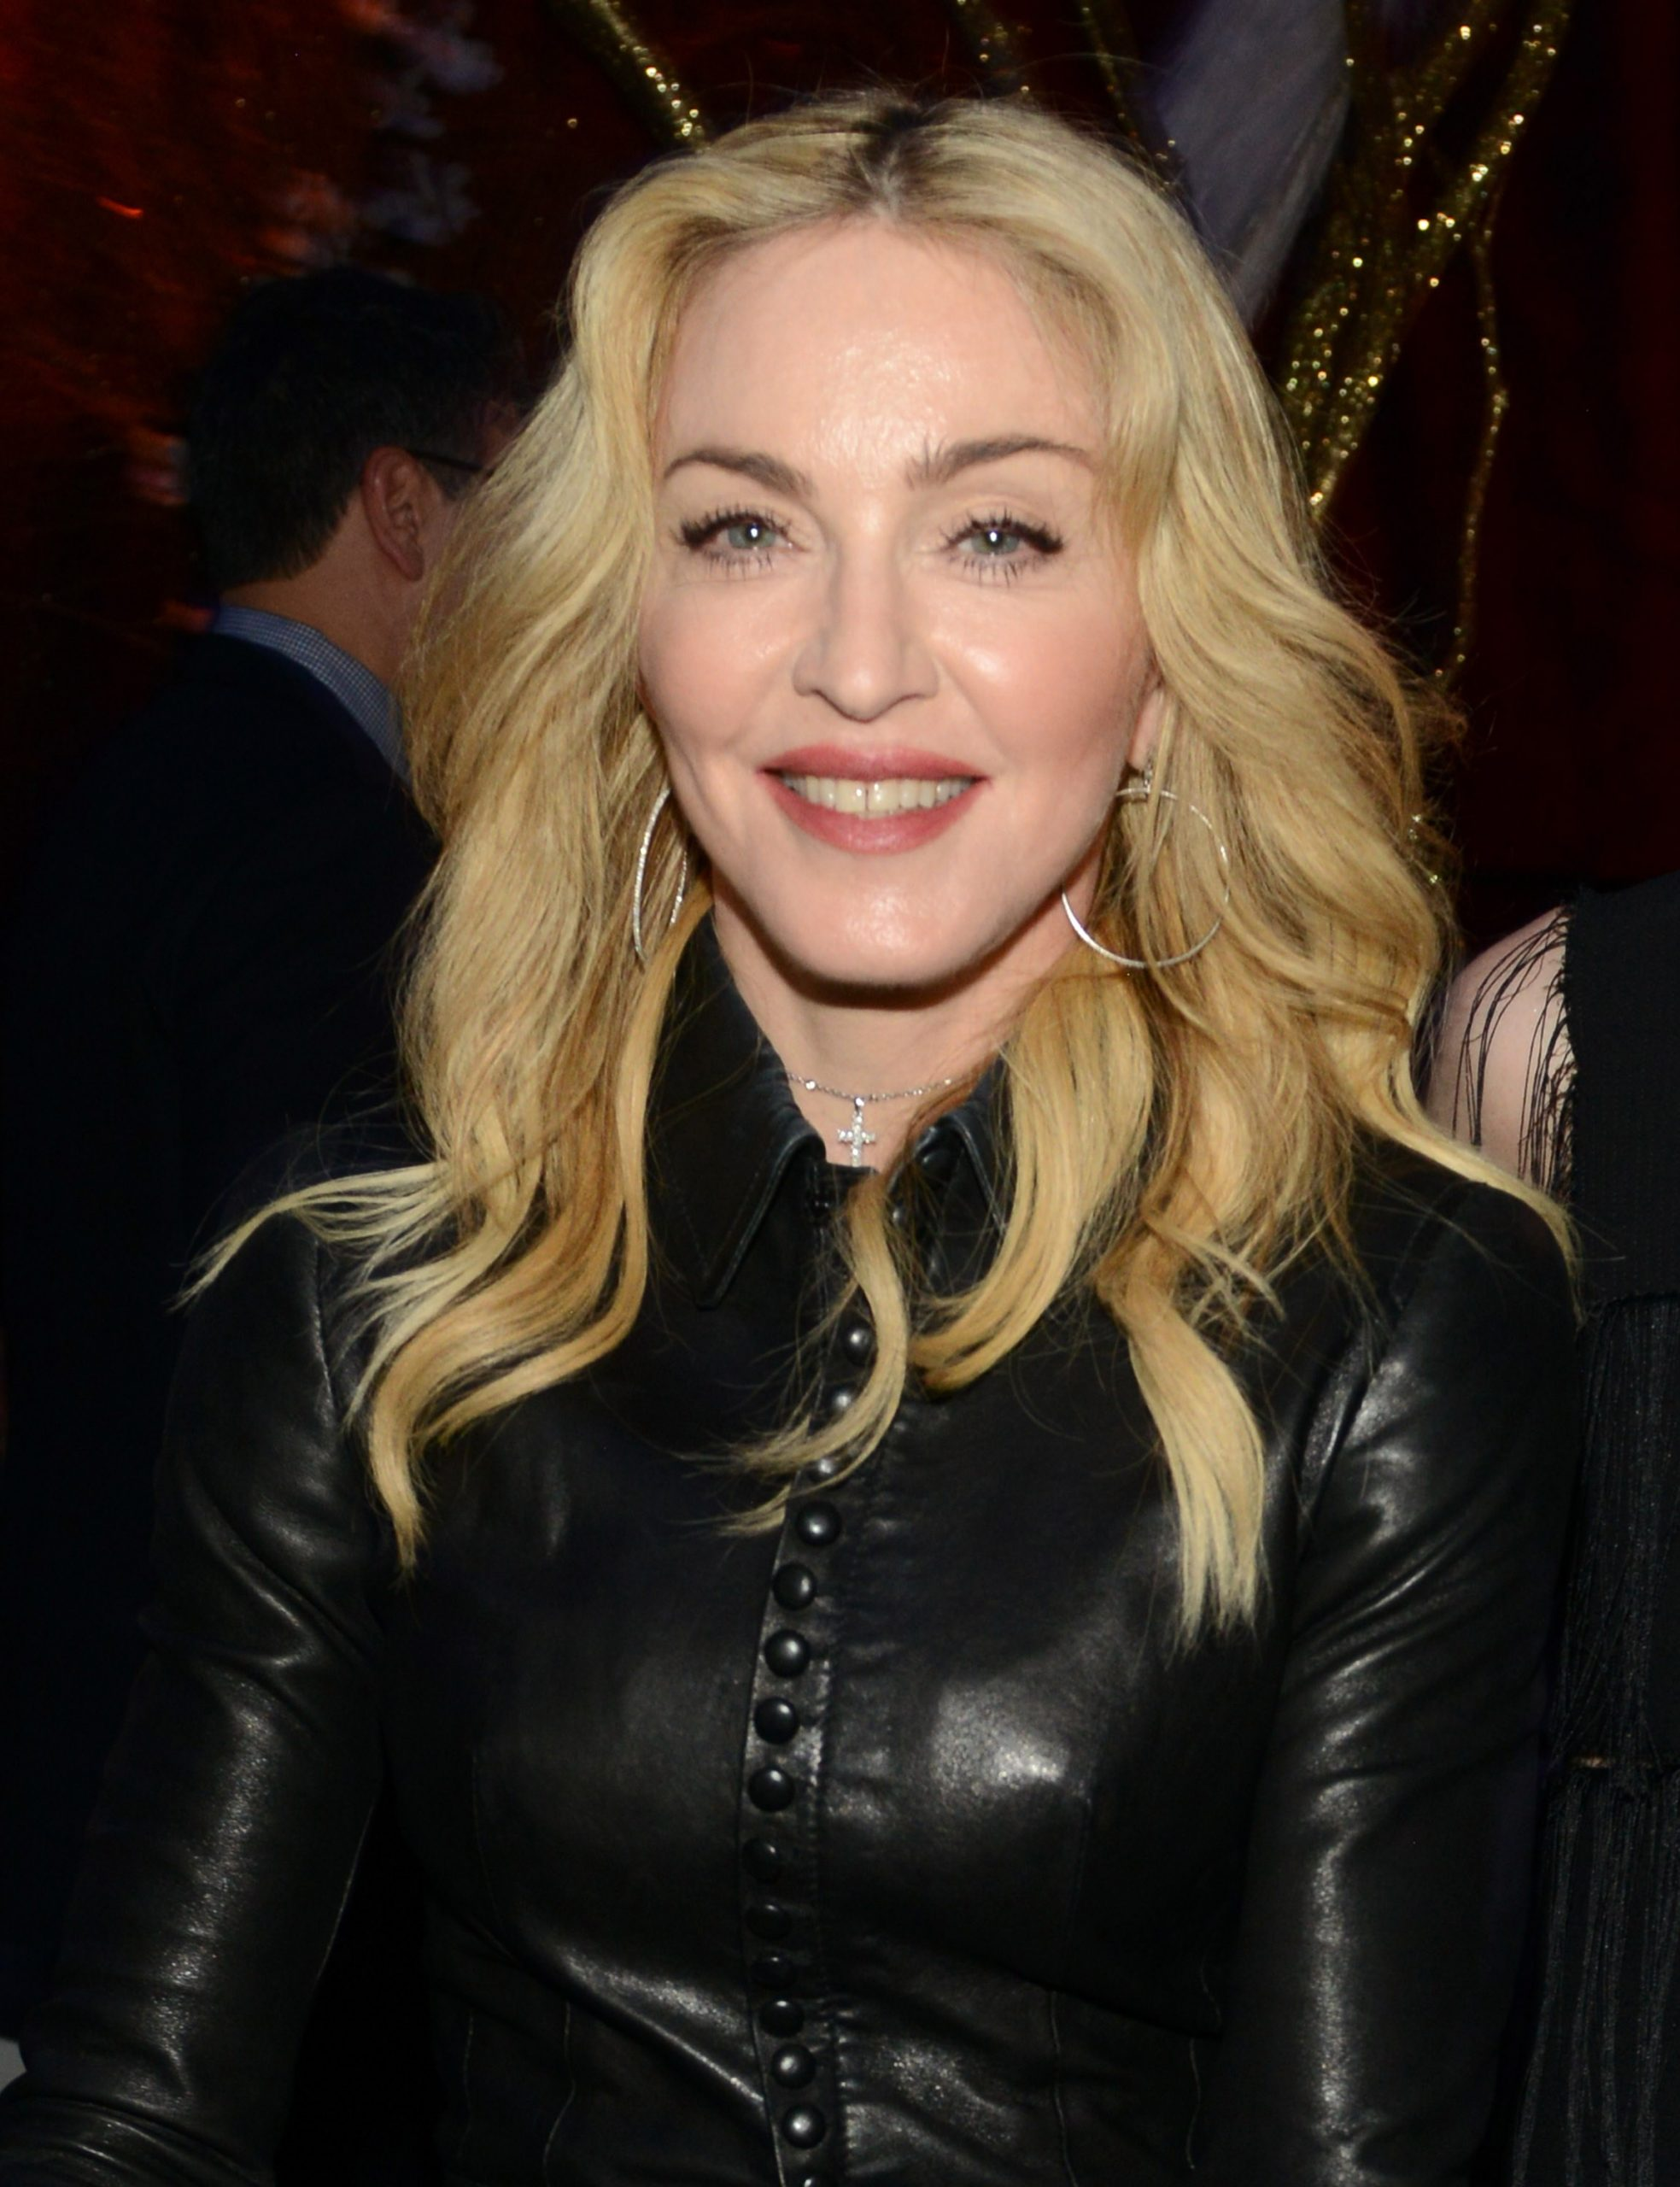 Teeth with character: Madonna